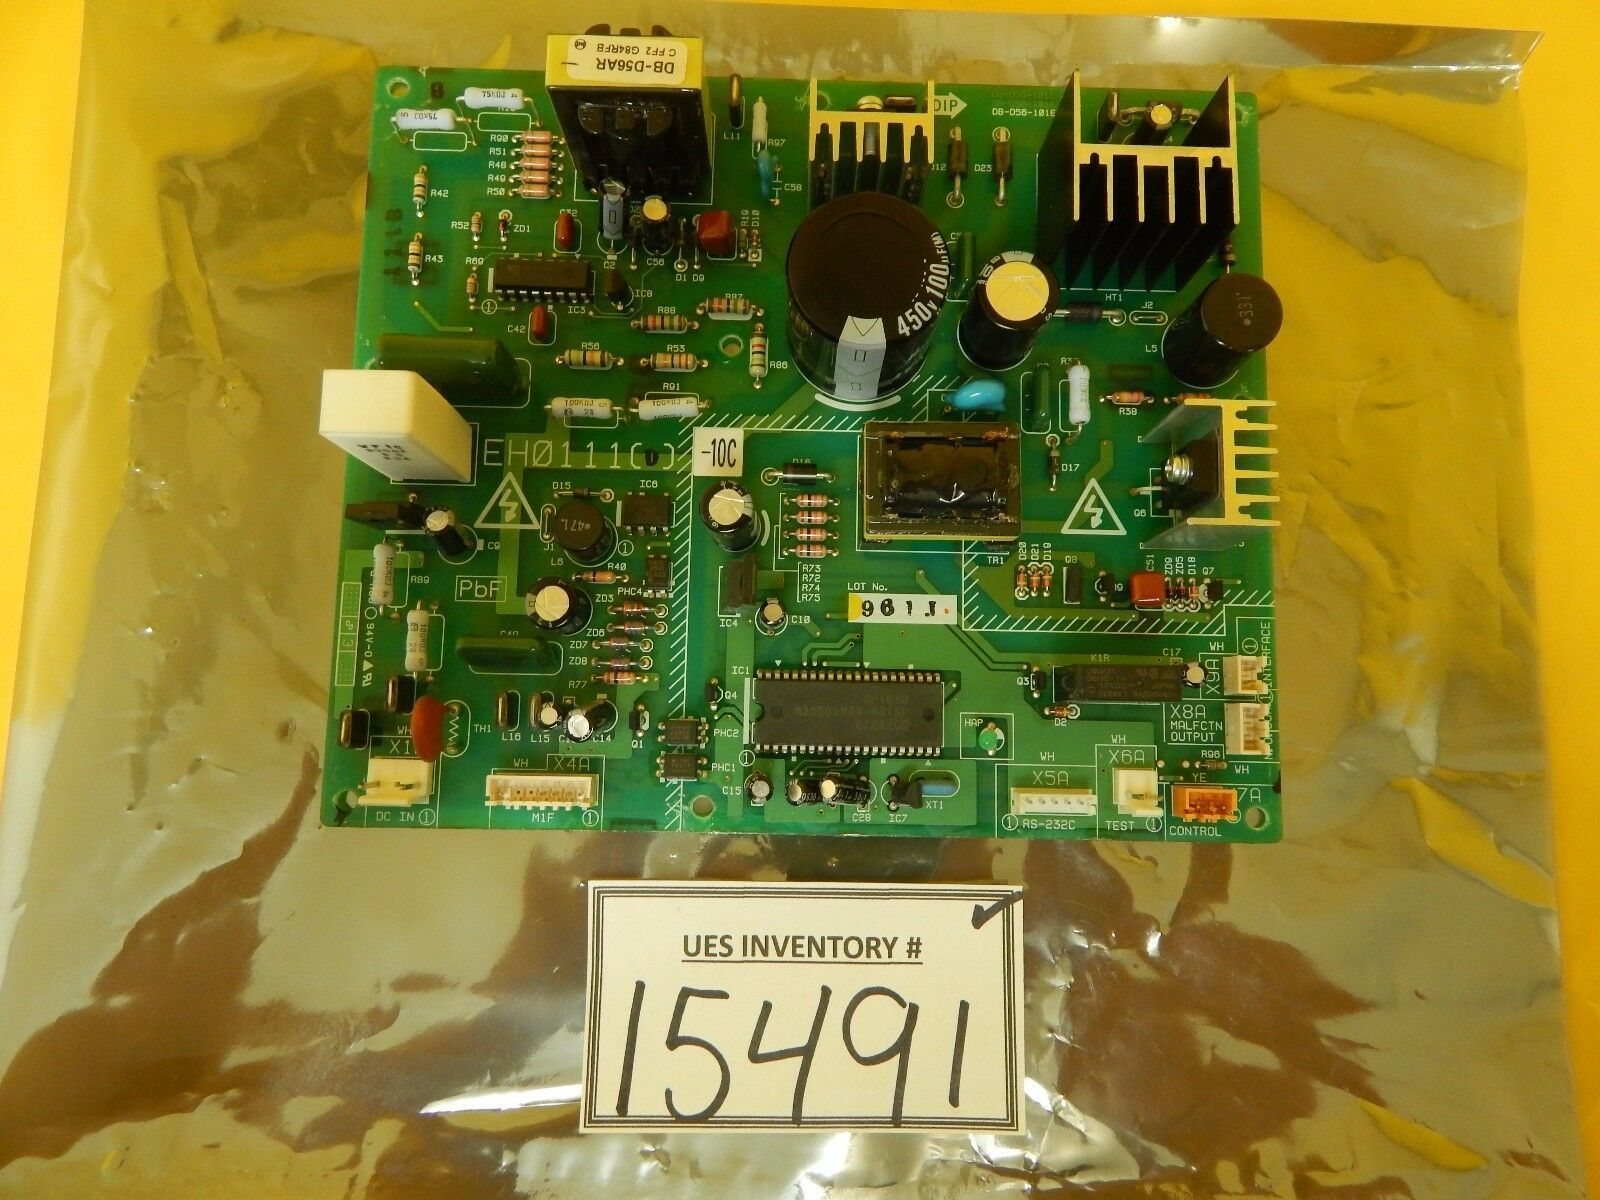 DIP Incorporated EH0111(D)-10C Power Supply PCB EH0111 DB-D56-101E Used Working